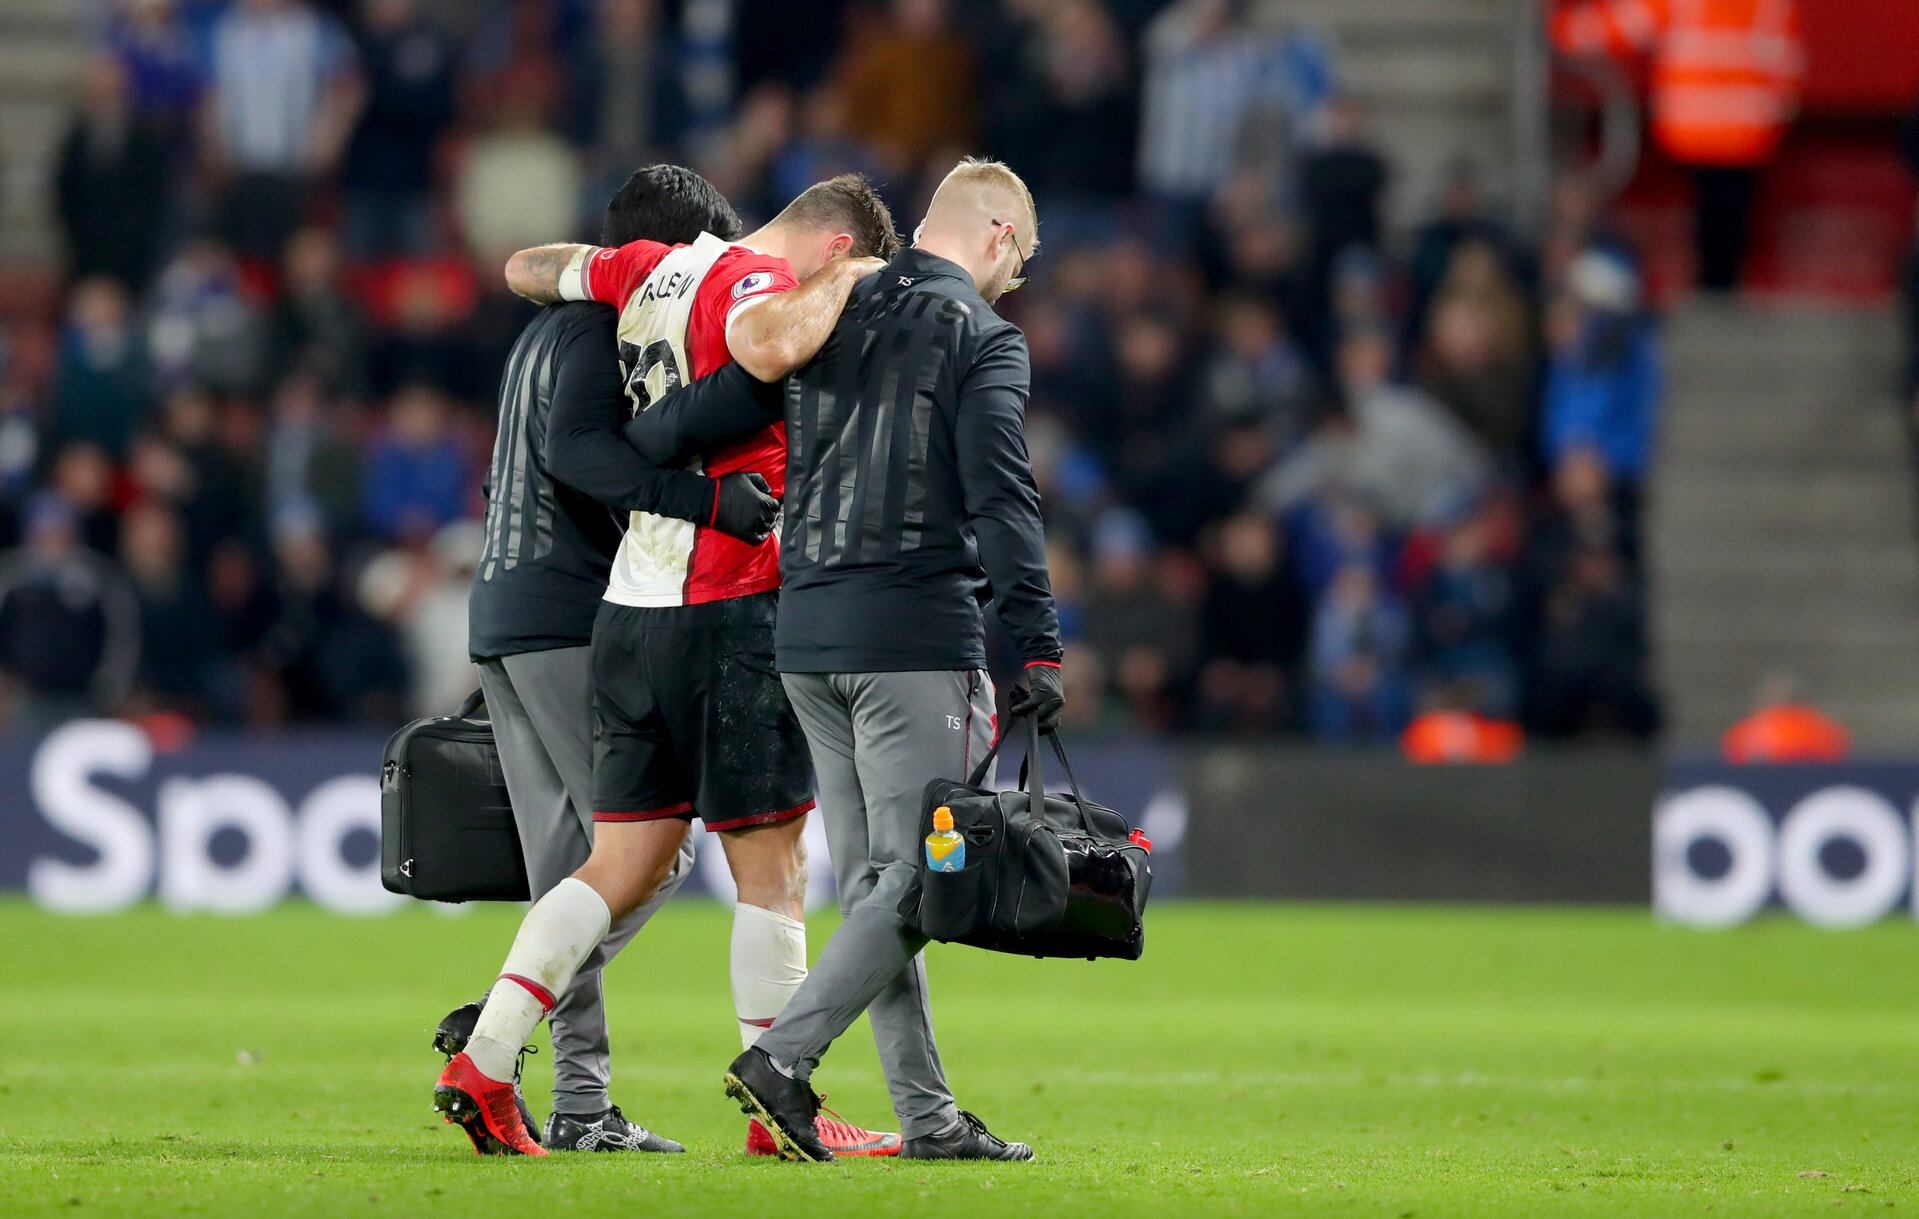 SOUTHAMPTON, ENGLAND - DECEMBER 23: Southampton's Charlie Austin leaves the pitch injured during the Premier League match between Southampton and Huddersfield Town at St Mary's Stadium on December 23, 2017 in Southampton, England. (Photo by Matt Watson/Southampton FC via Getty Images)